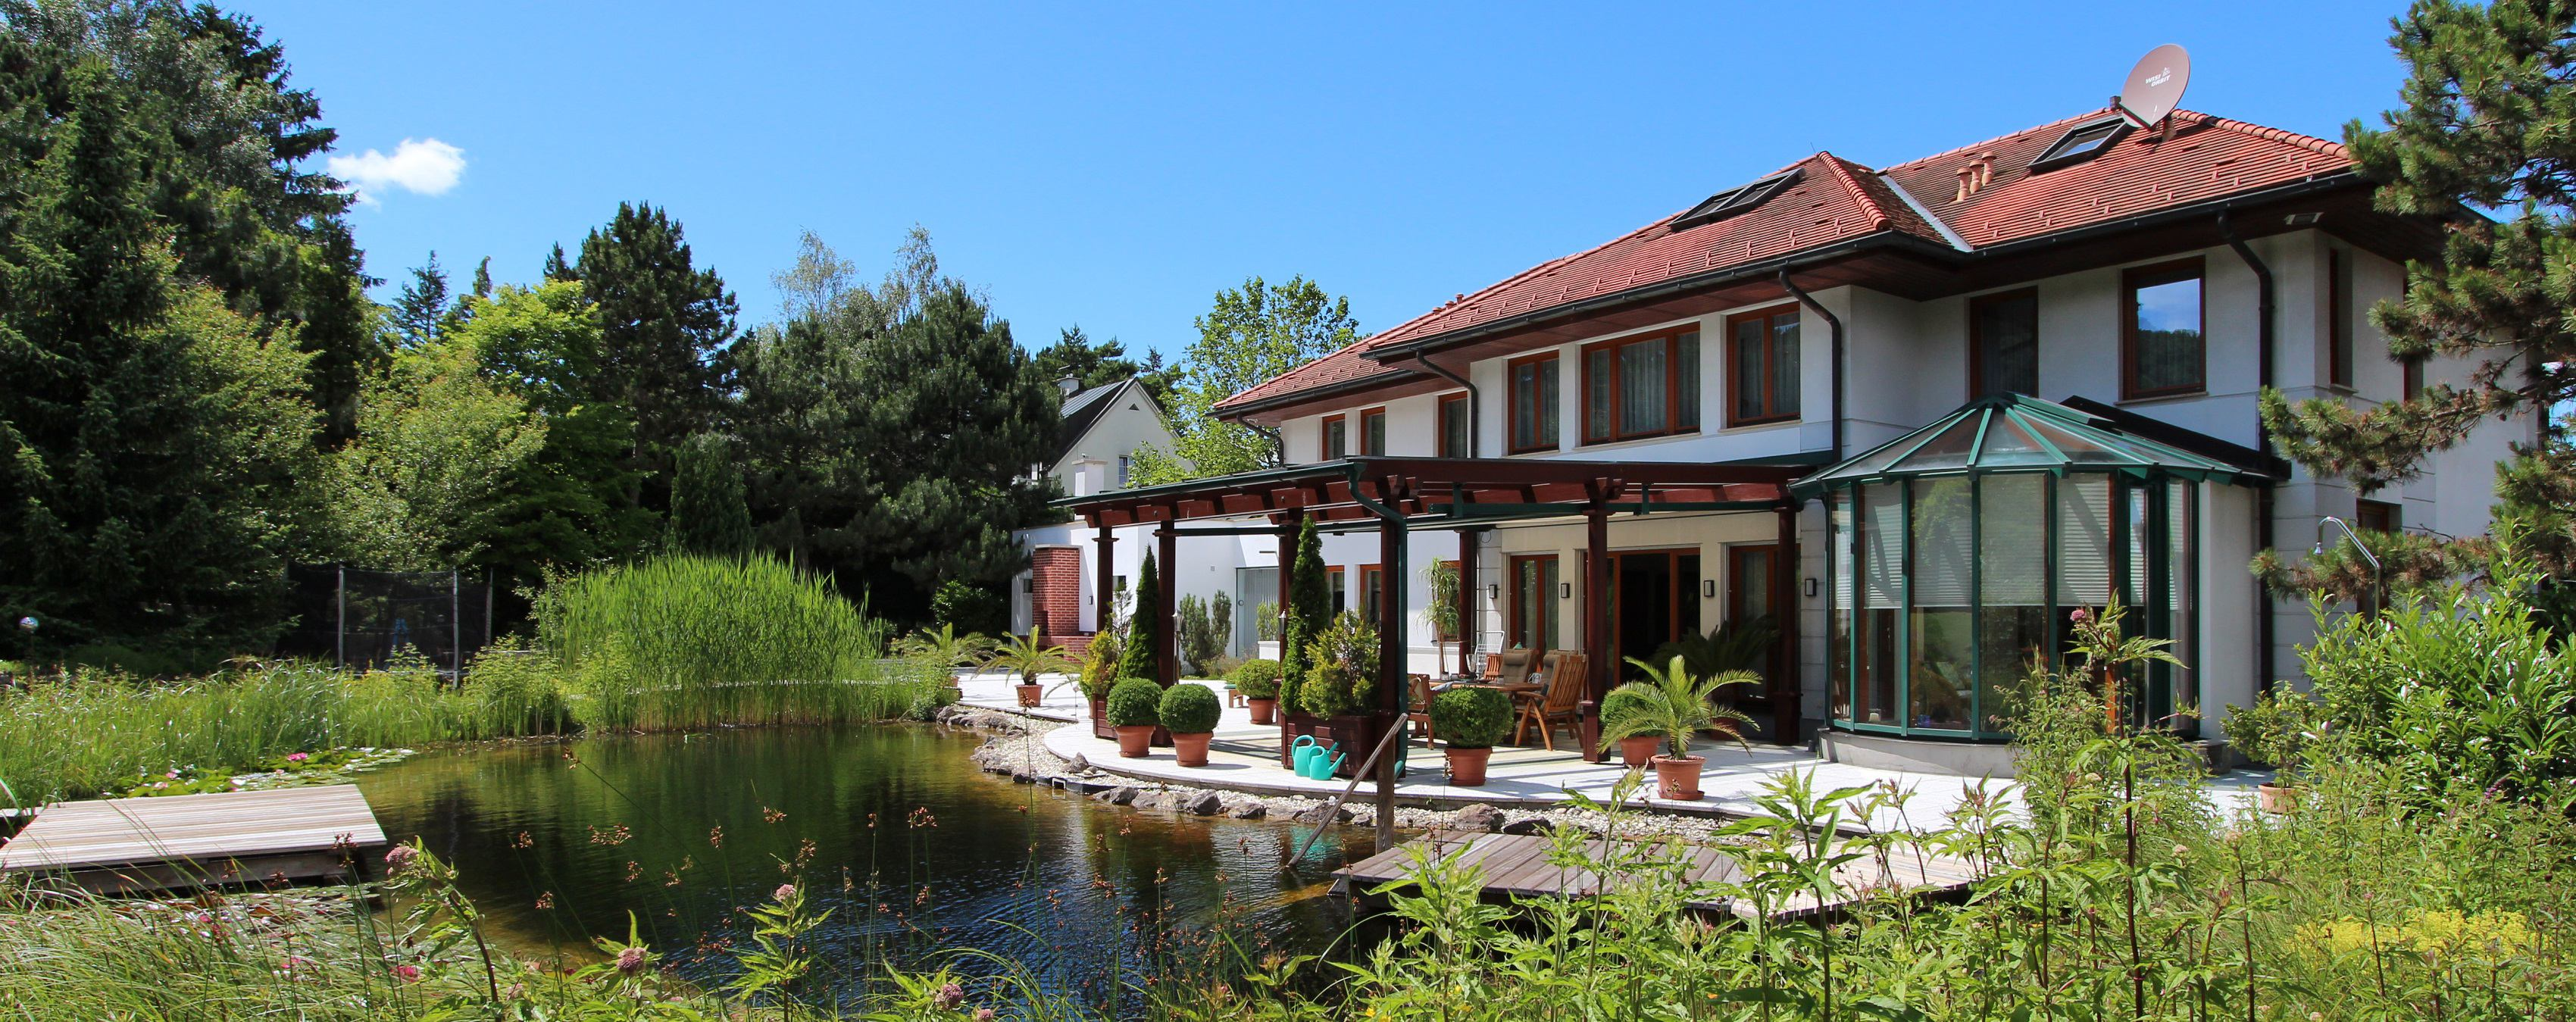 Photo: Elegant villa with park and swimming pond